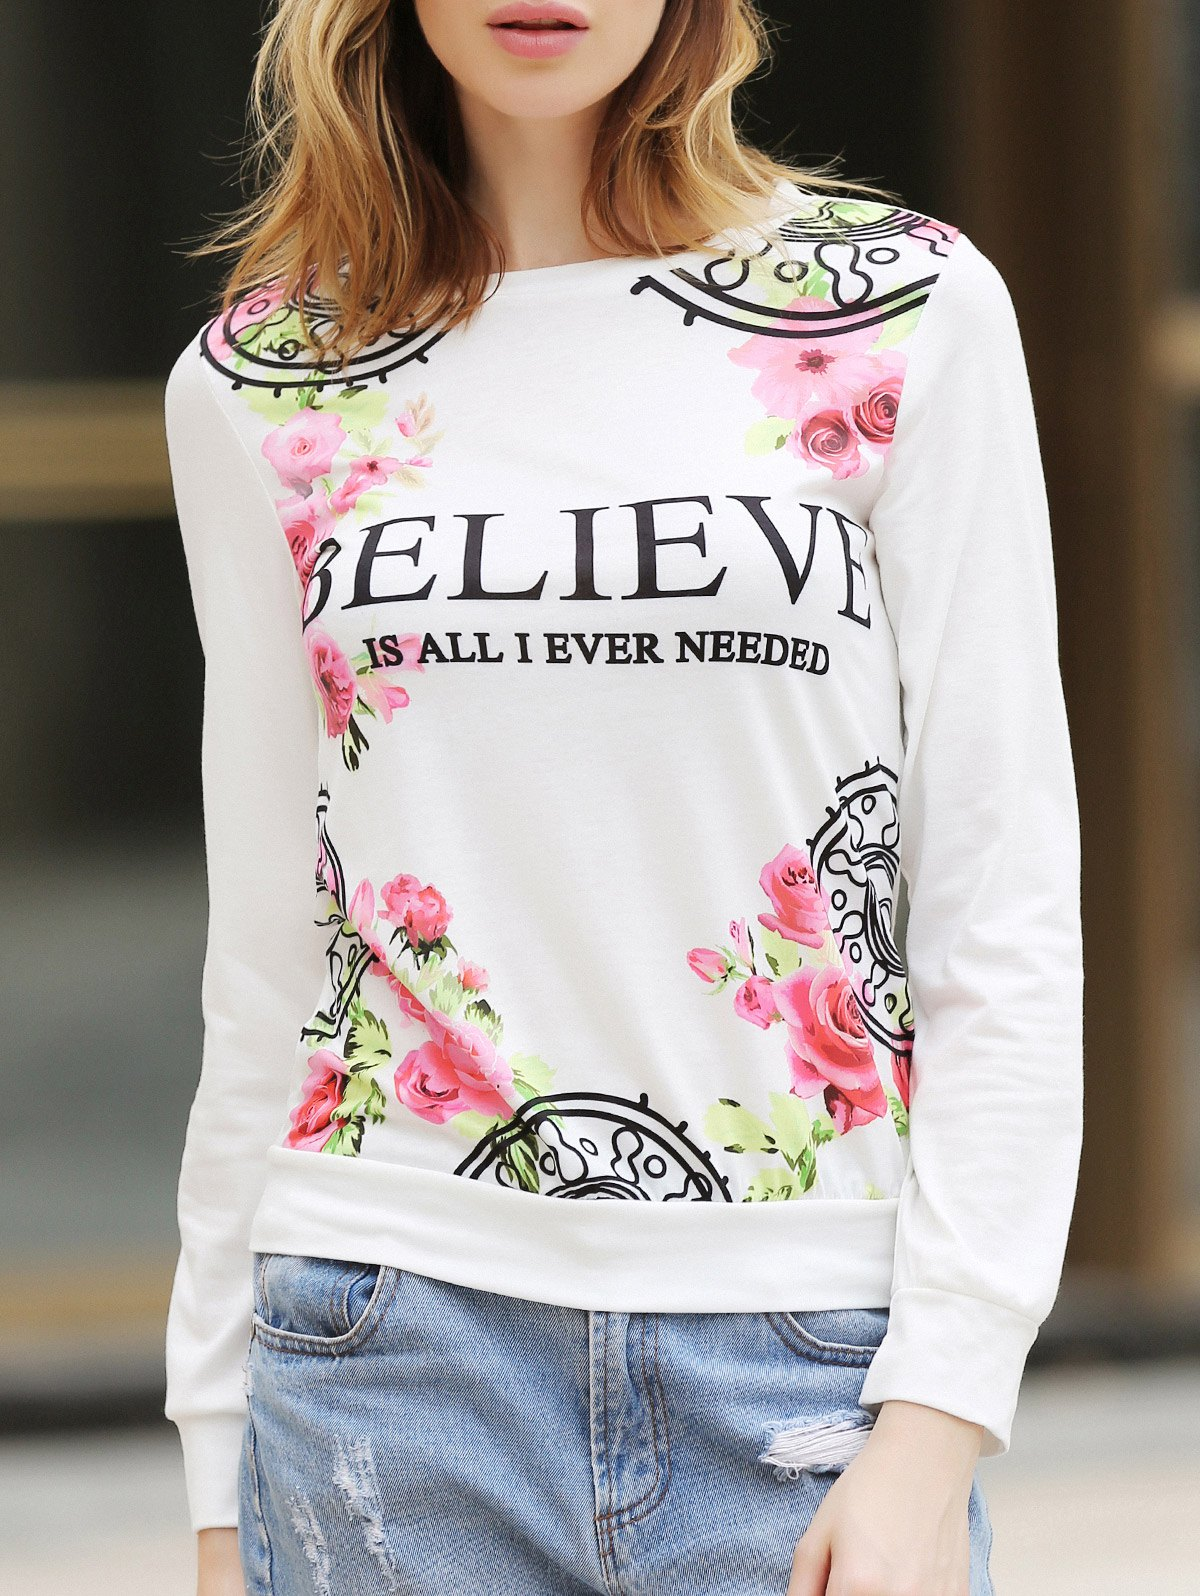 Casual Letter and Rose Printed Pullover Sweatshirt For Women 10x with chip compatible for canon 470 471 pgi 470 cli 471 ink cartridge for canon mg6840 mg5740 ts5040 printer